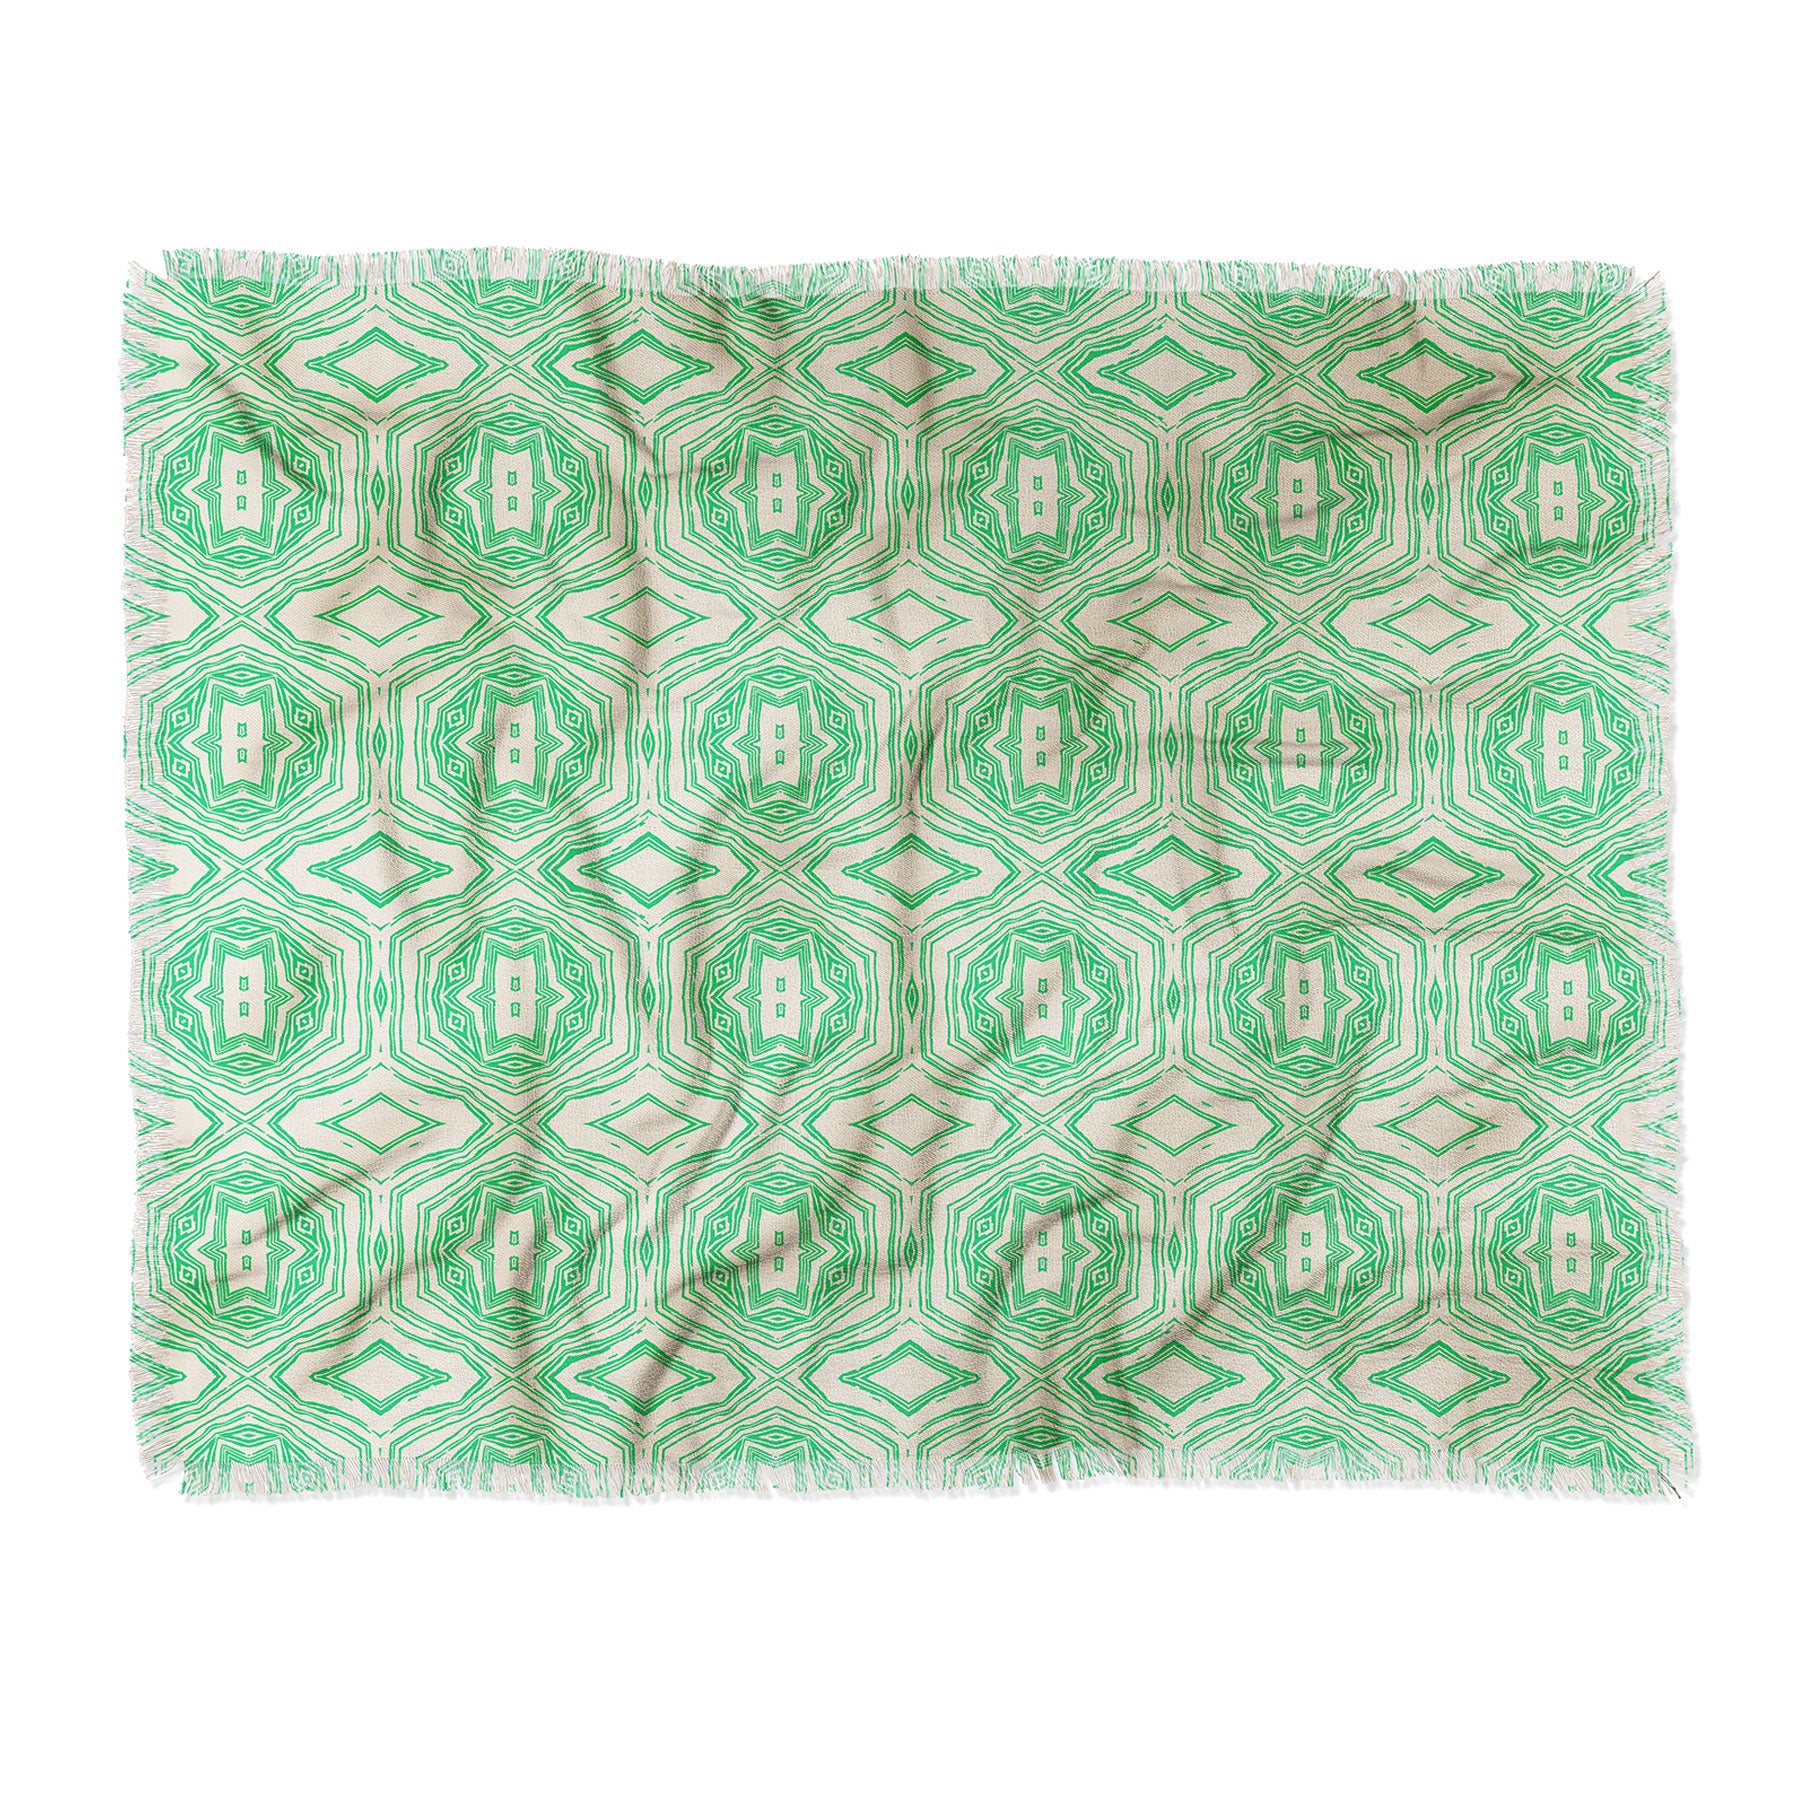 Holli Zollinger ANTHOLOGY OF PATTERN SEVILLE MARBLE GREEN Throw Blanket